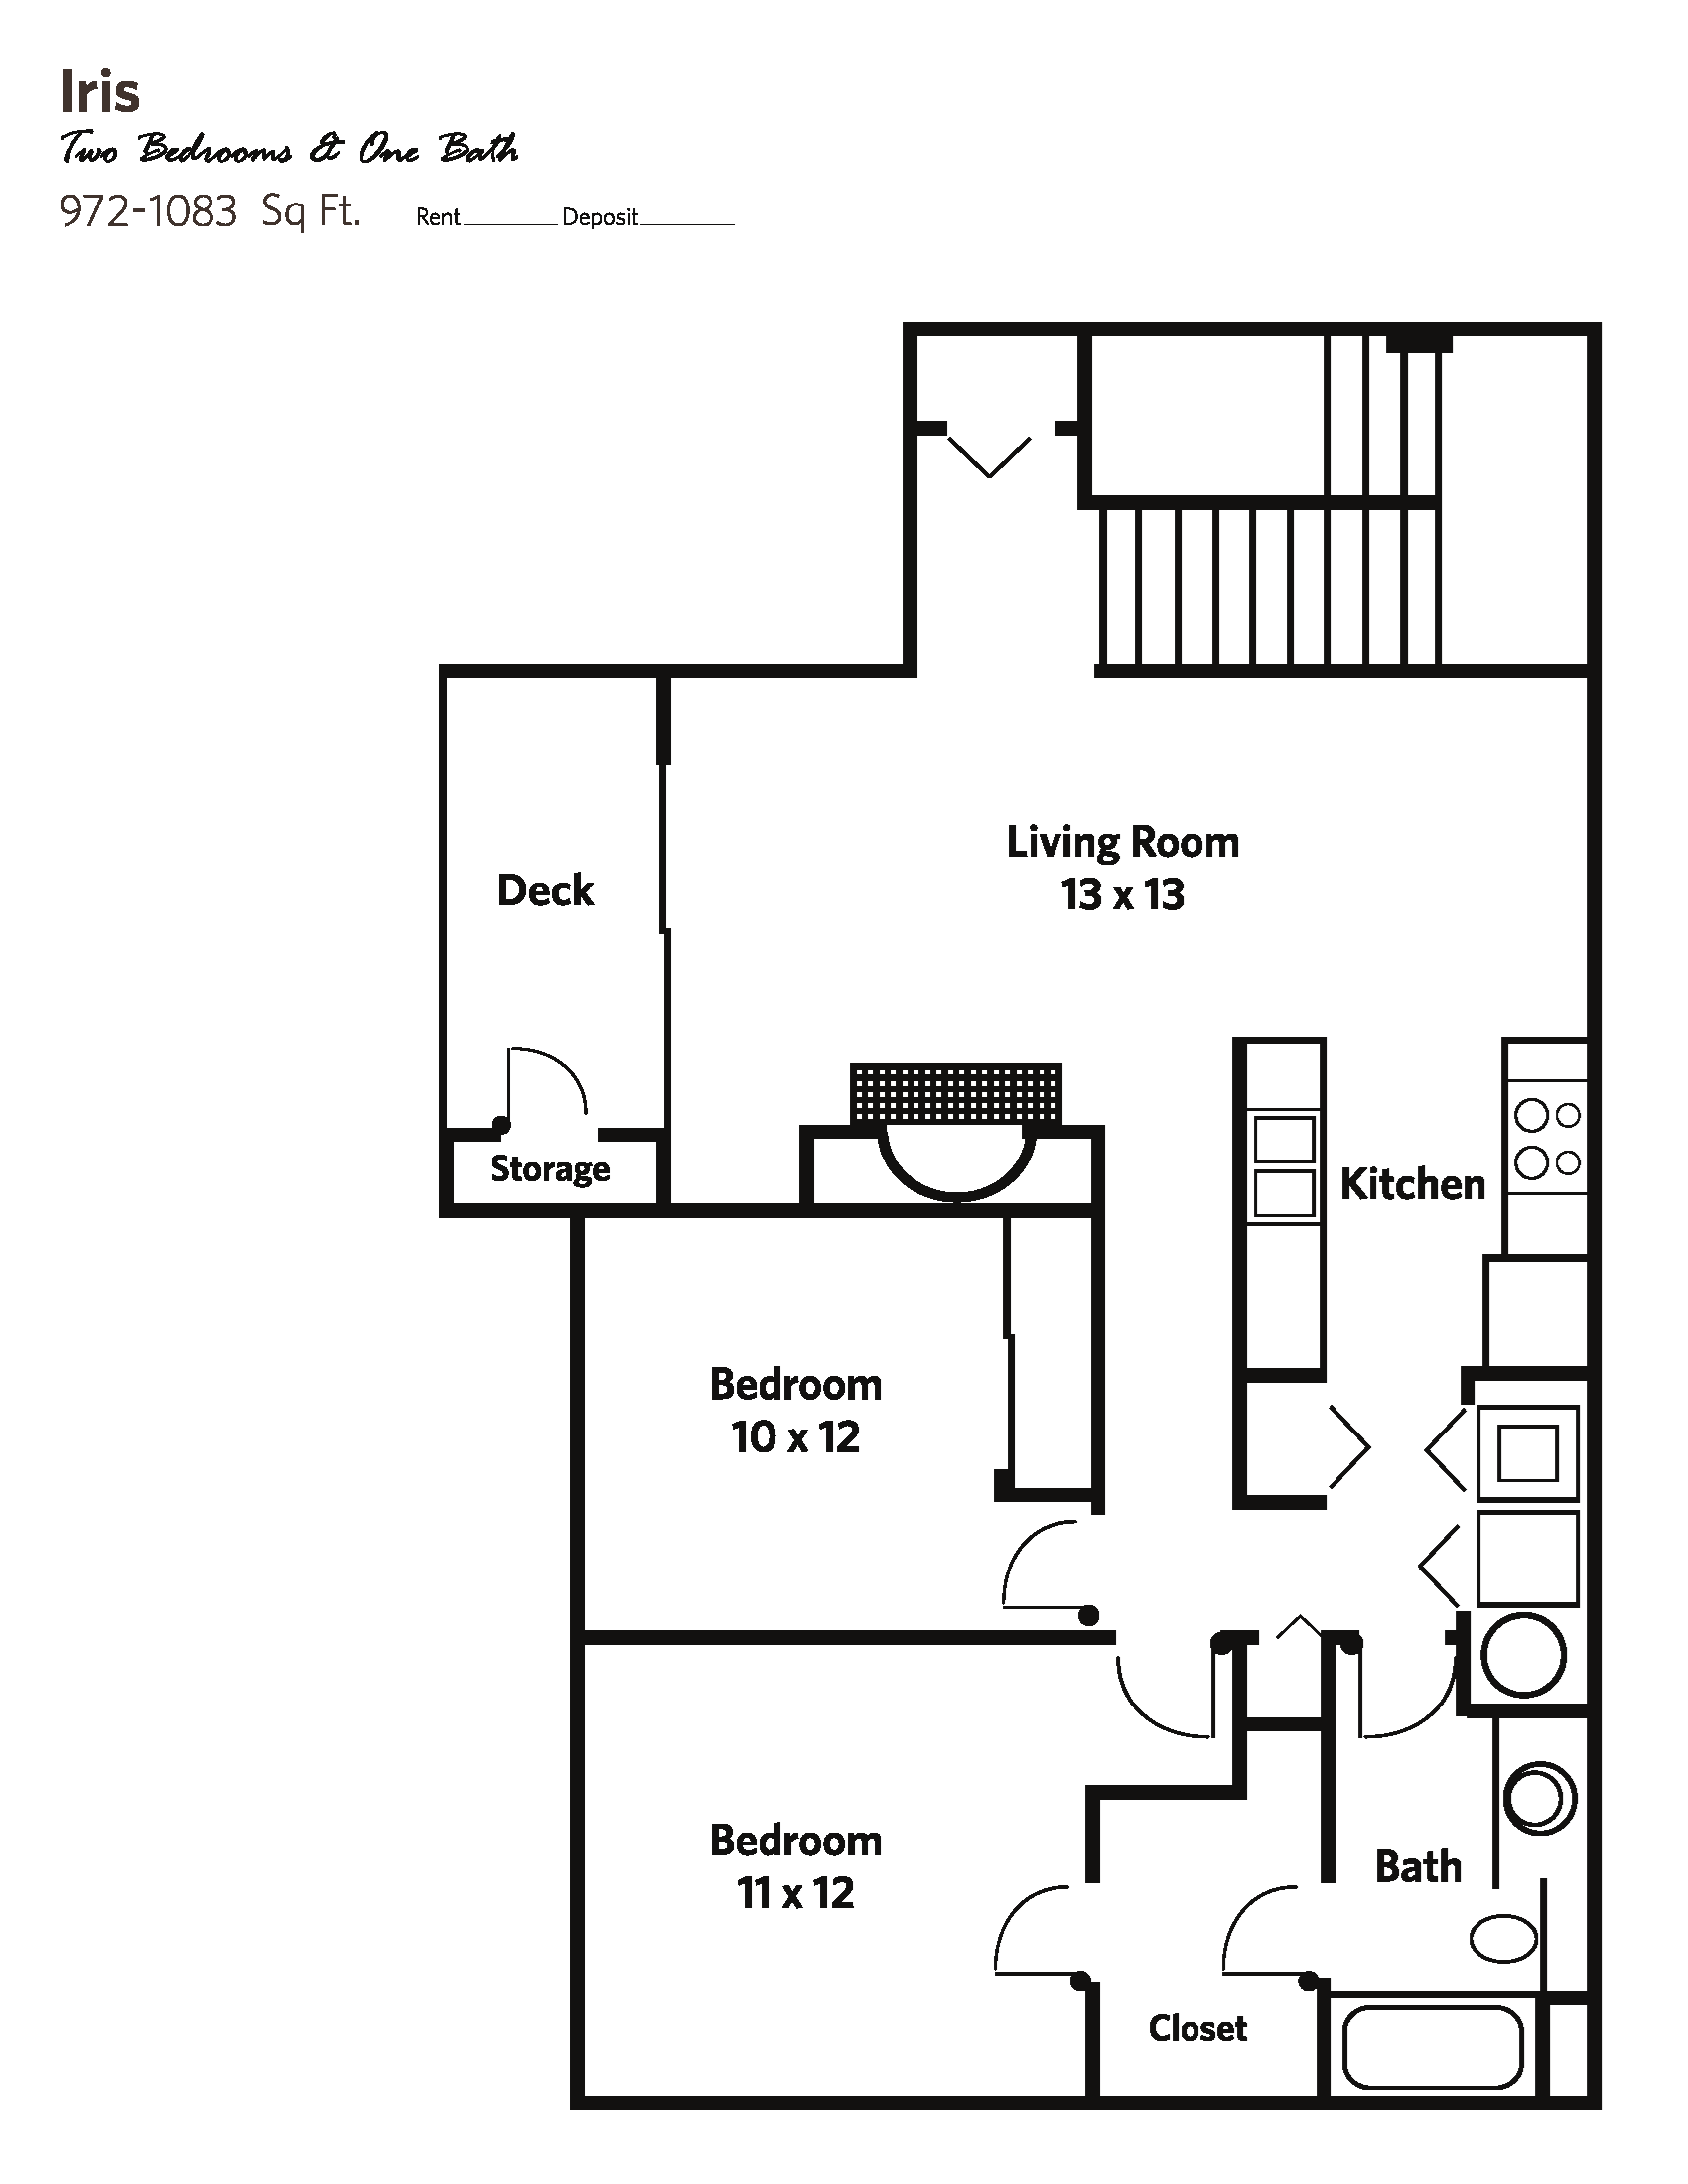 IRIS Small (2 bed + 1 bath) - Apartments Floor Plan 4